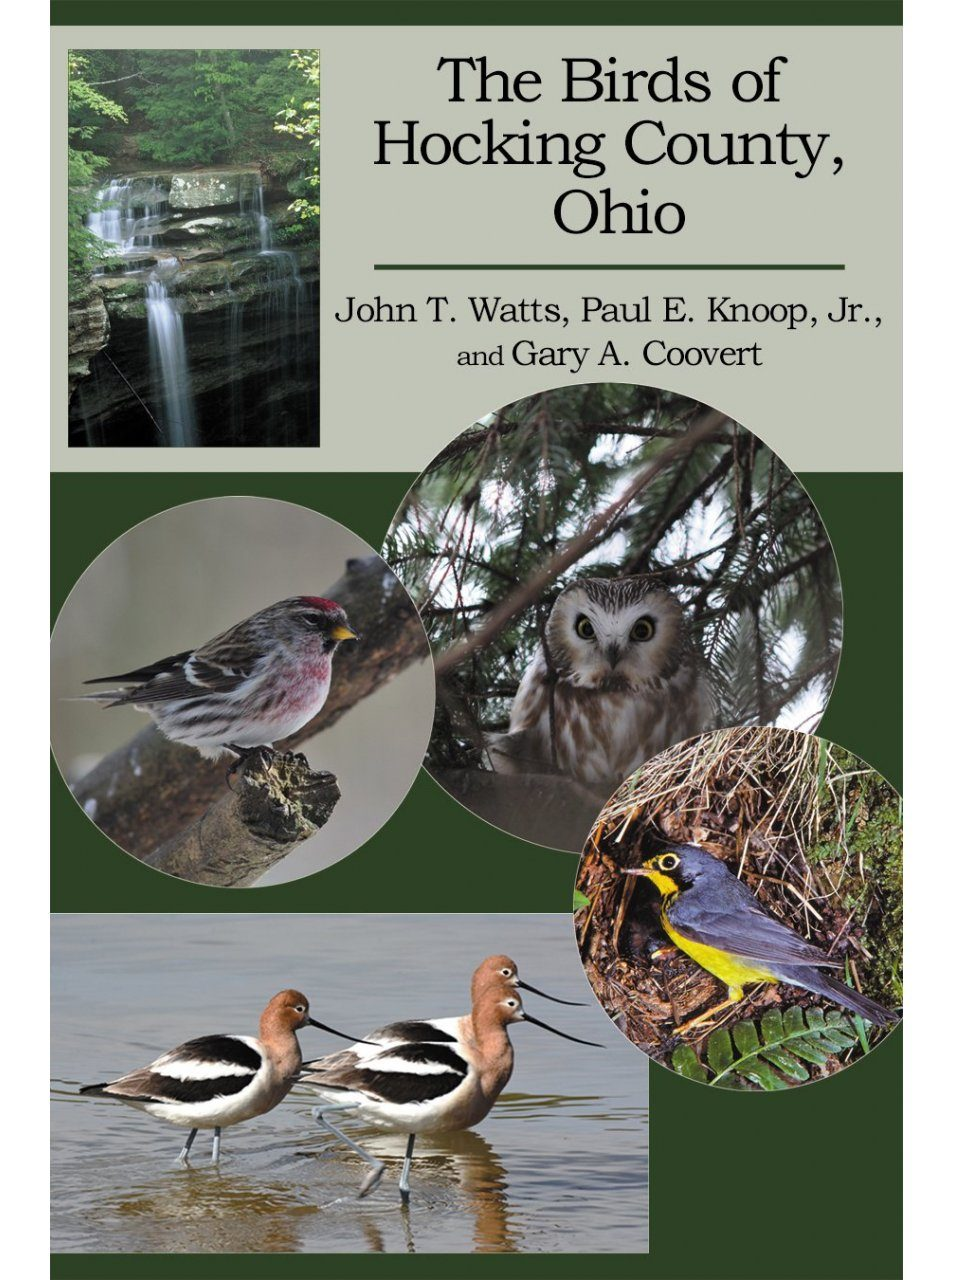 The Birds of Hocking County, Ohio